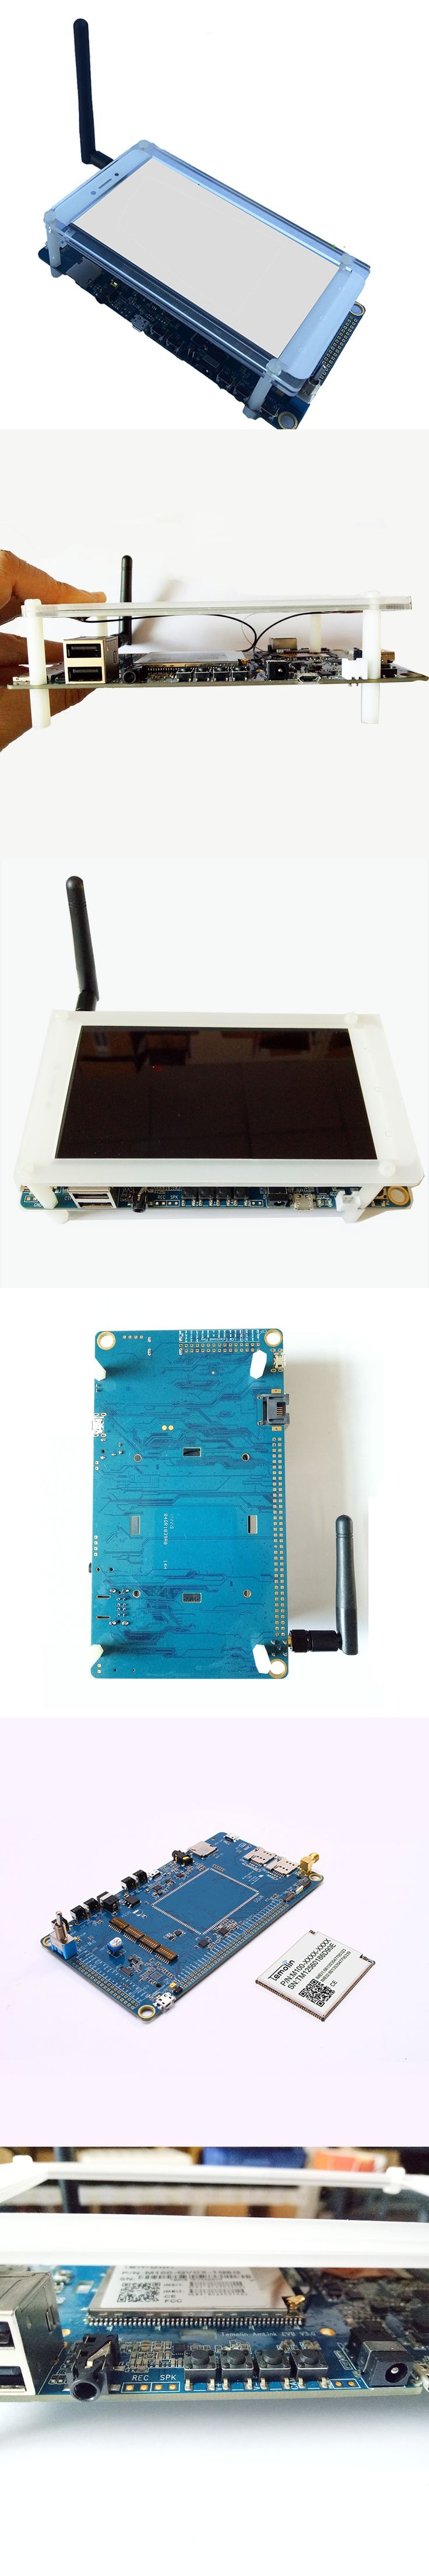 [SmartFly] Quad Core ARM Cortex A53 CPU, 450MHz Mali-T720 GPU, 2GB LPDDR3 + 16GB eMMC3 Cell Phone Development Board